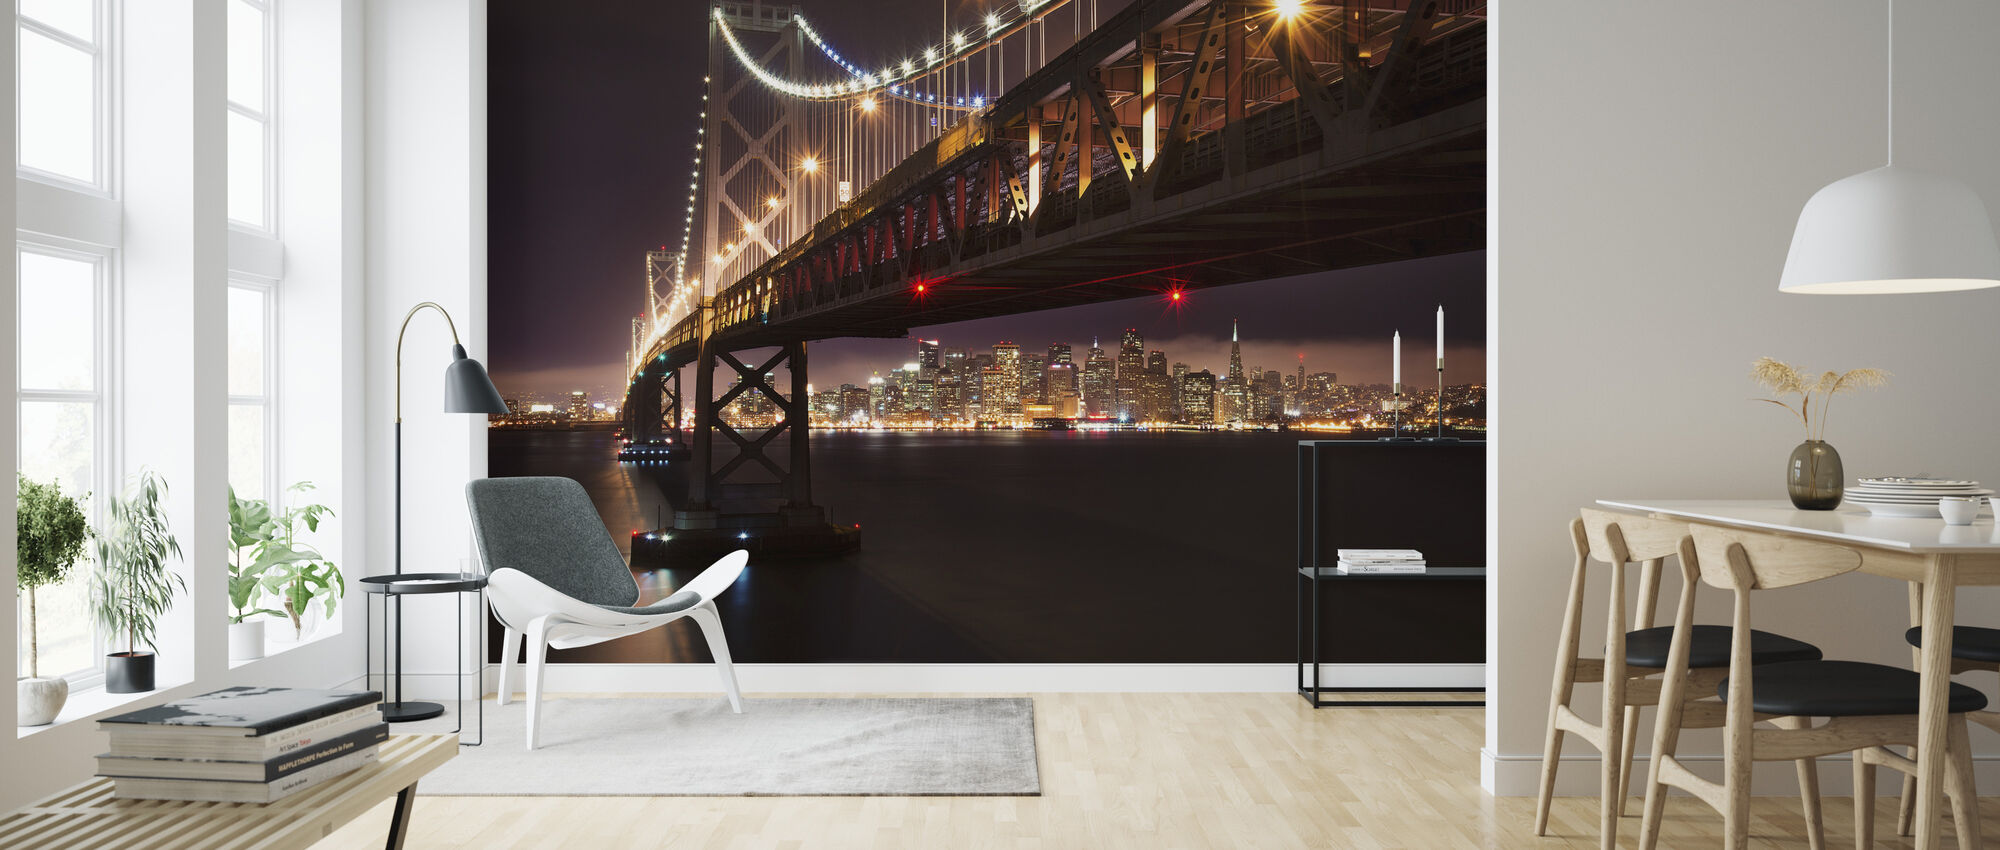 Bay Bridge in the Night - Wallpaper - Living Room